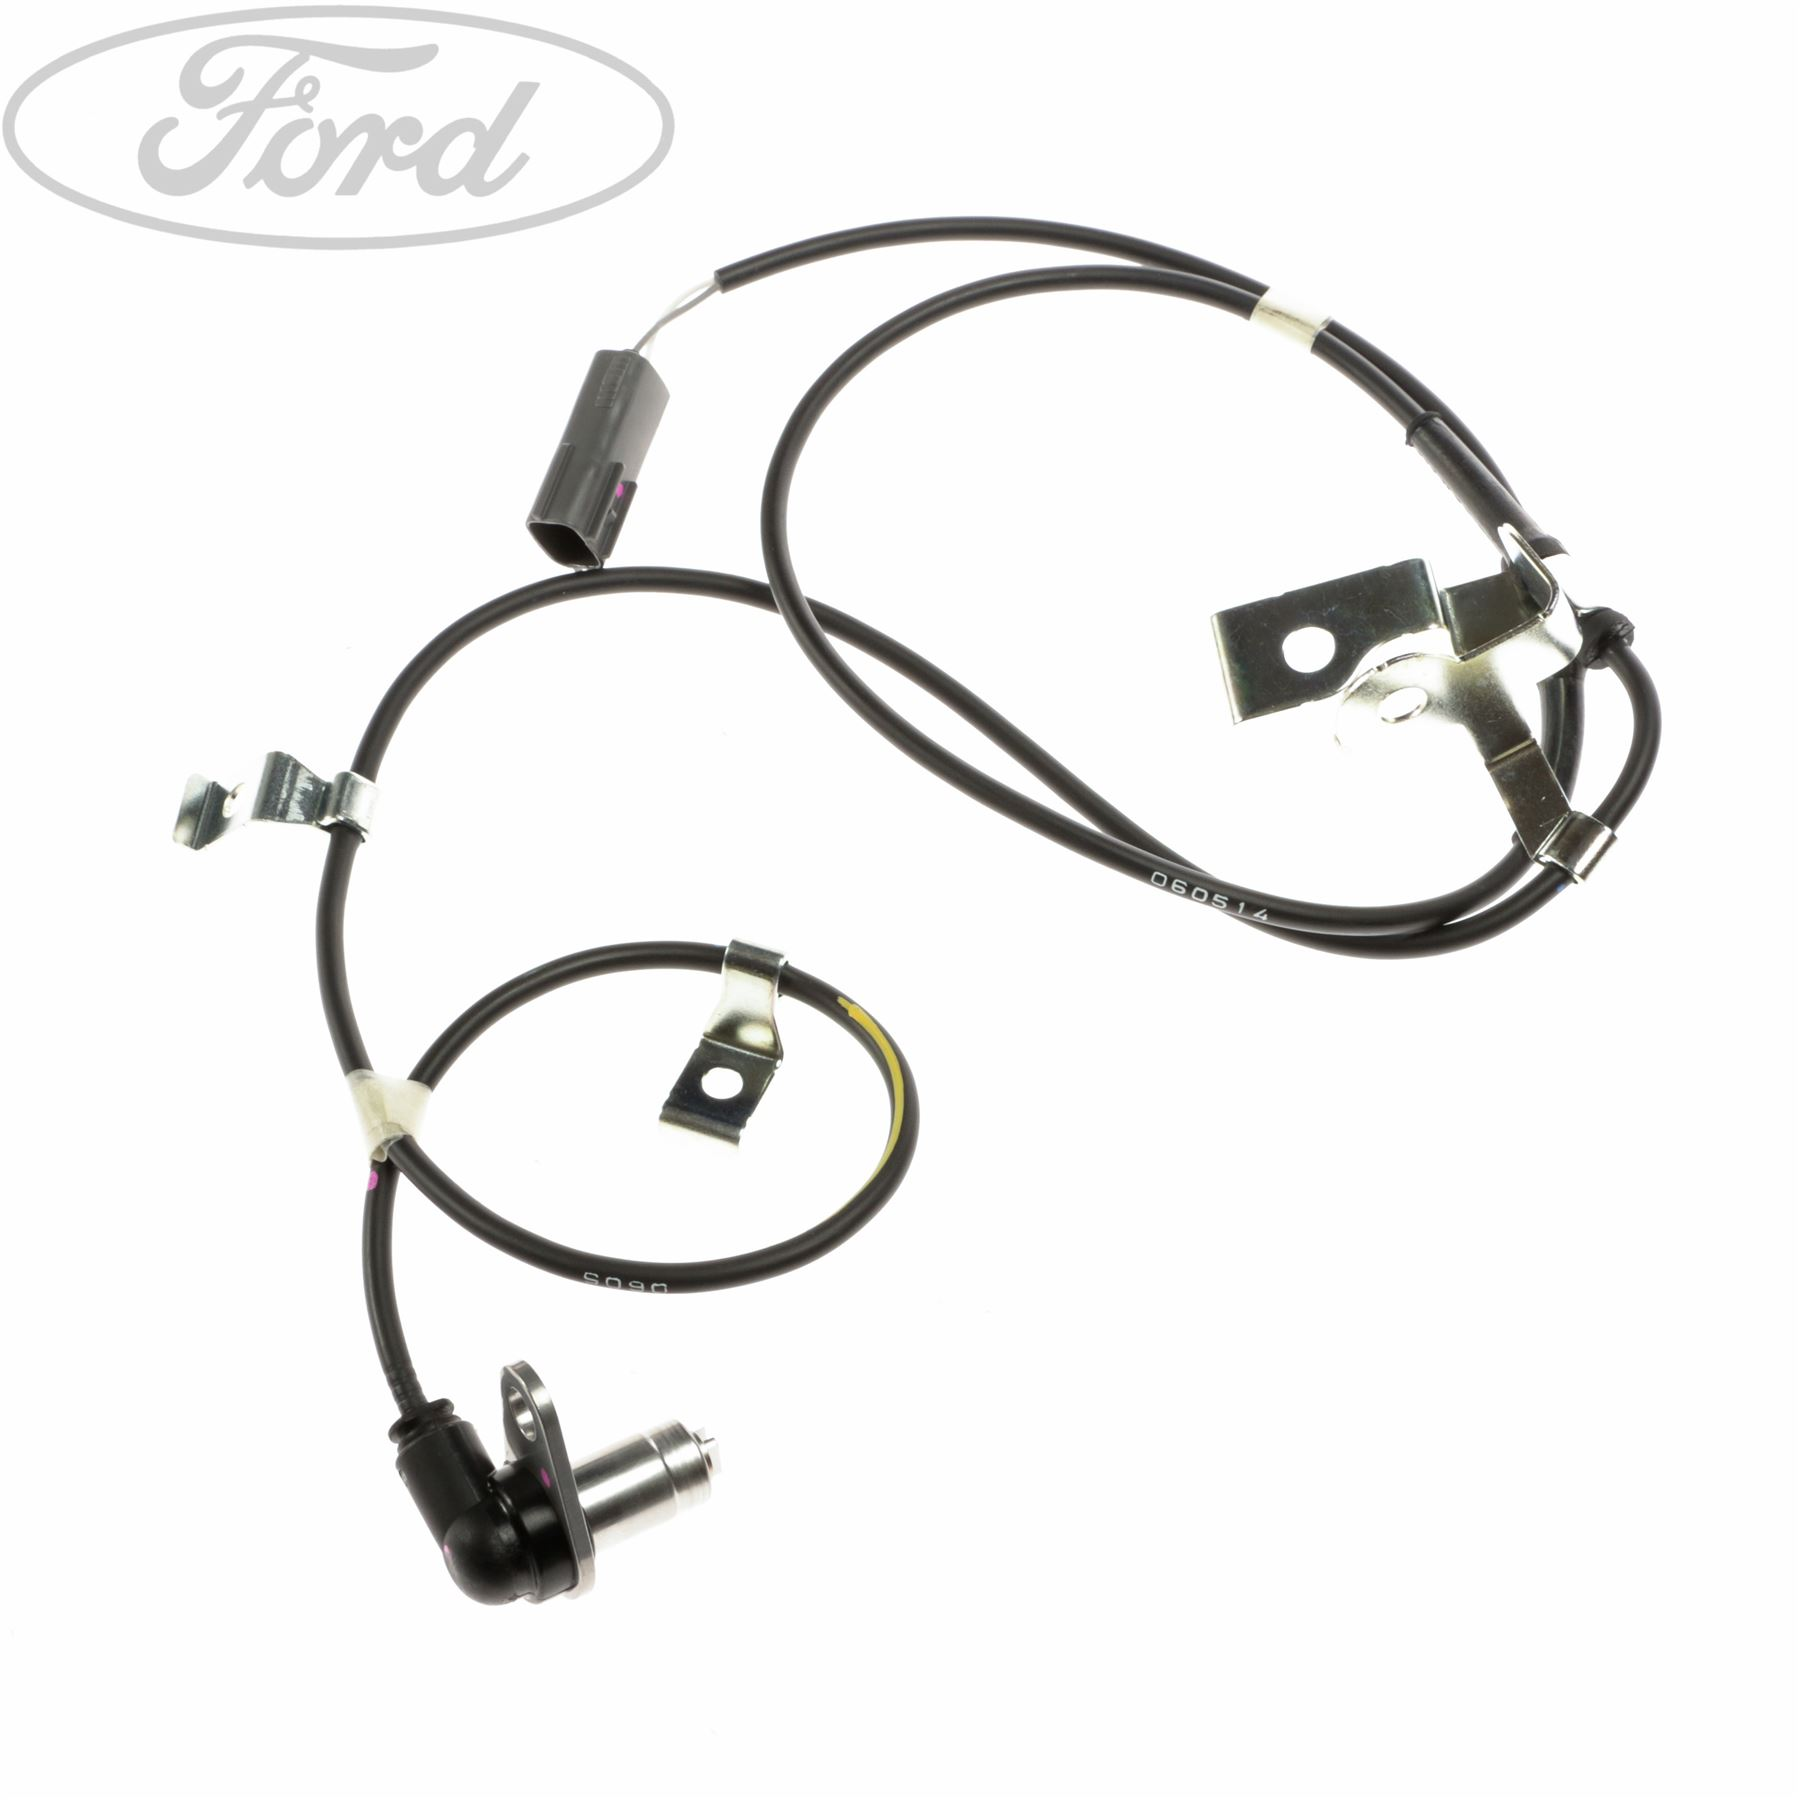 FRONT RIGHT ABS SENSOR CABLE FOR FORD RANGER 4883116